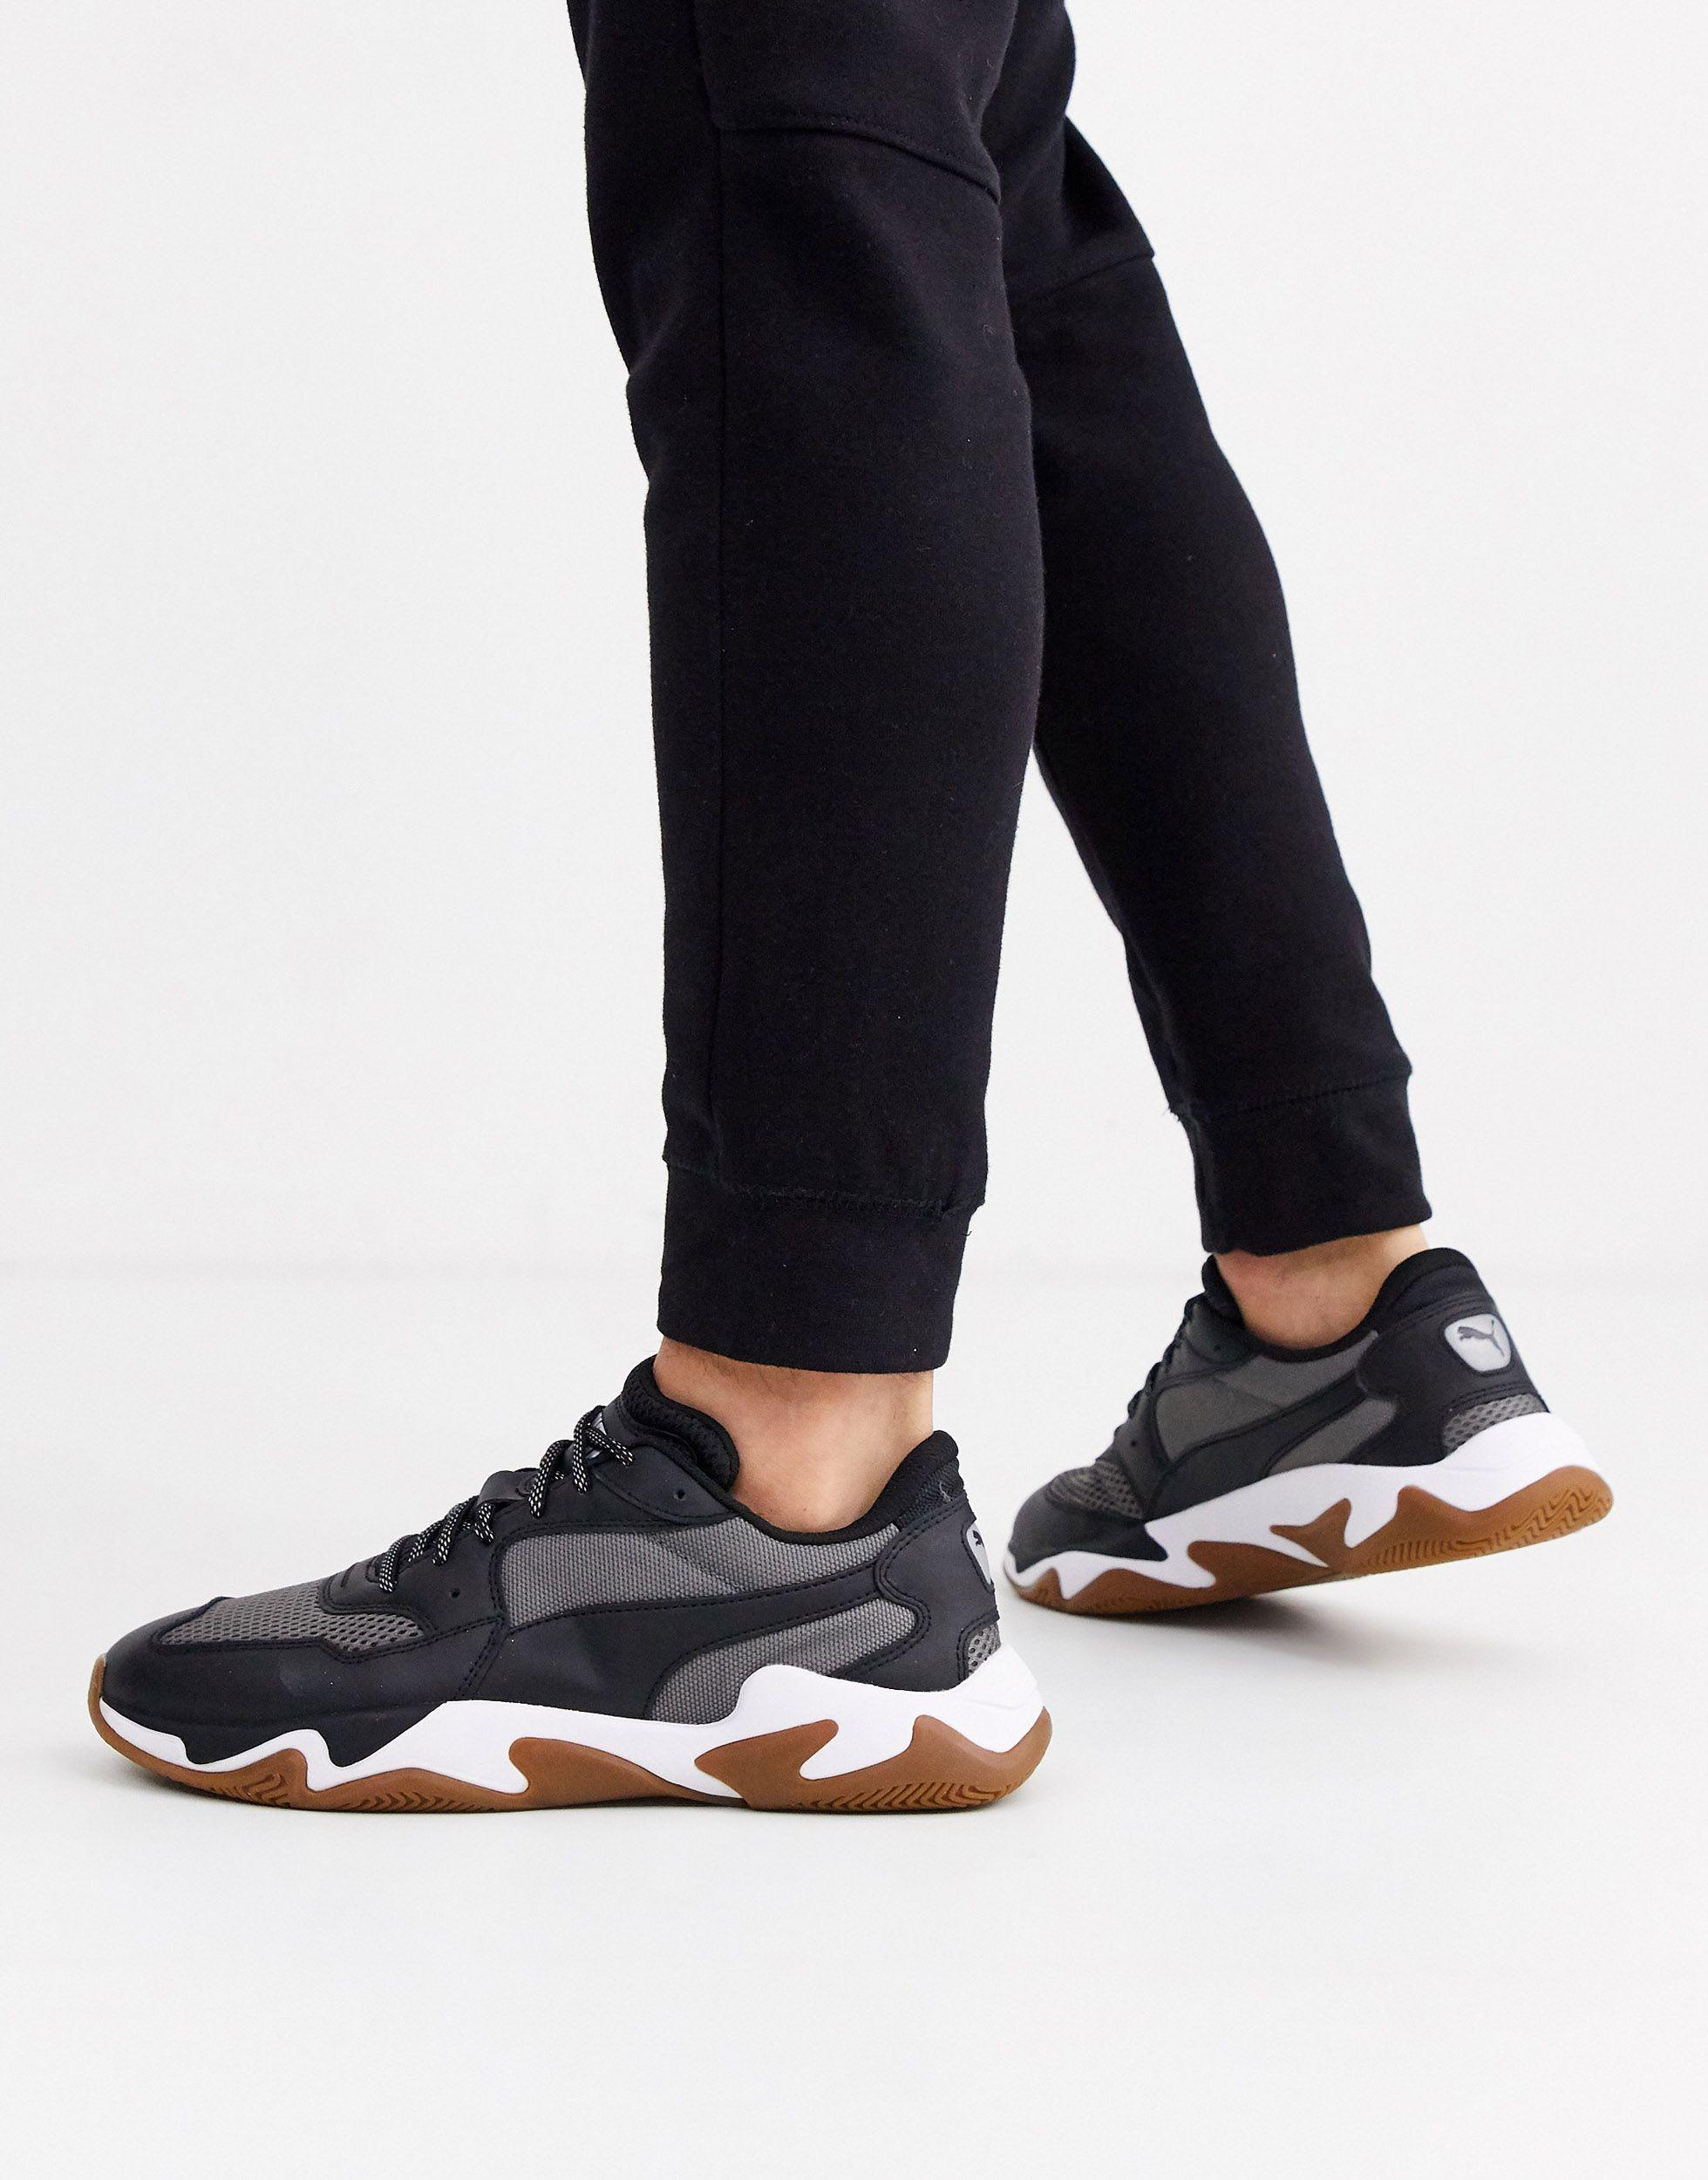 PUMA Rubber Storm Origin Trainers With Gum Sole in Black for ...